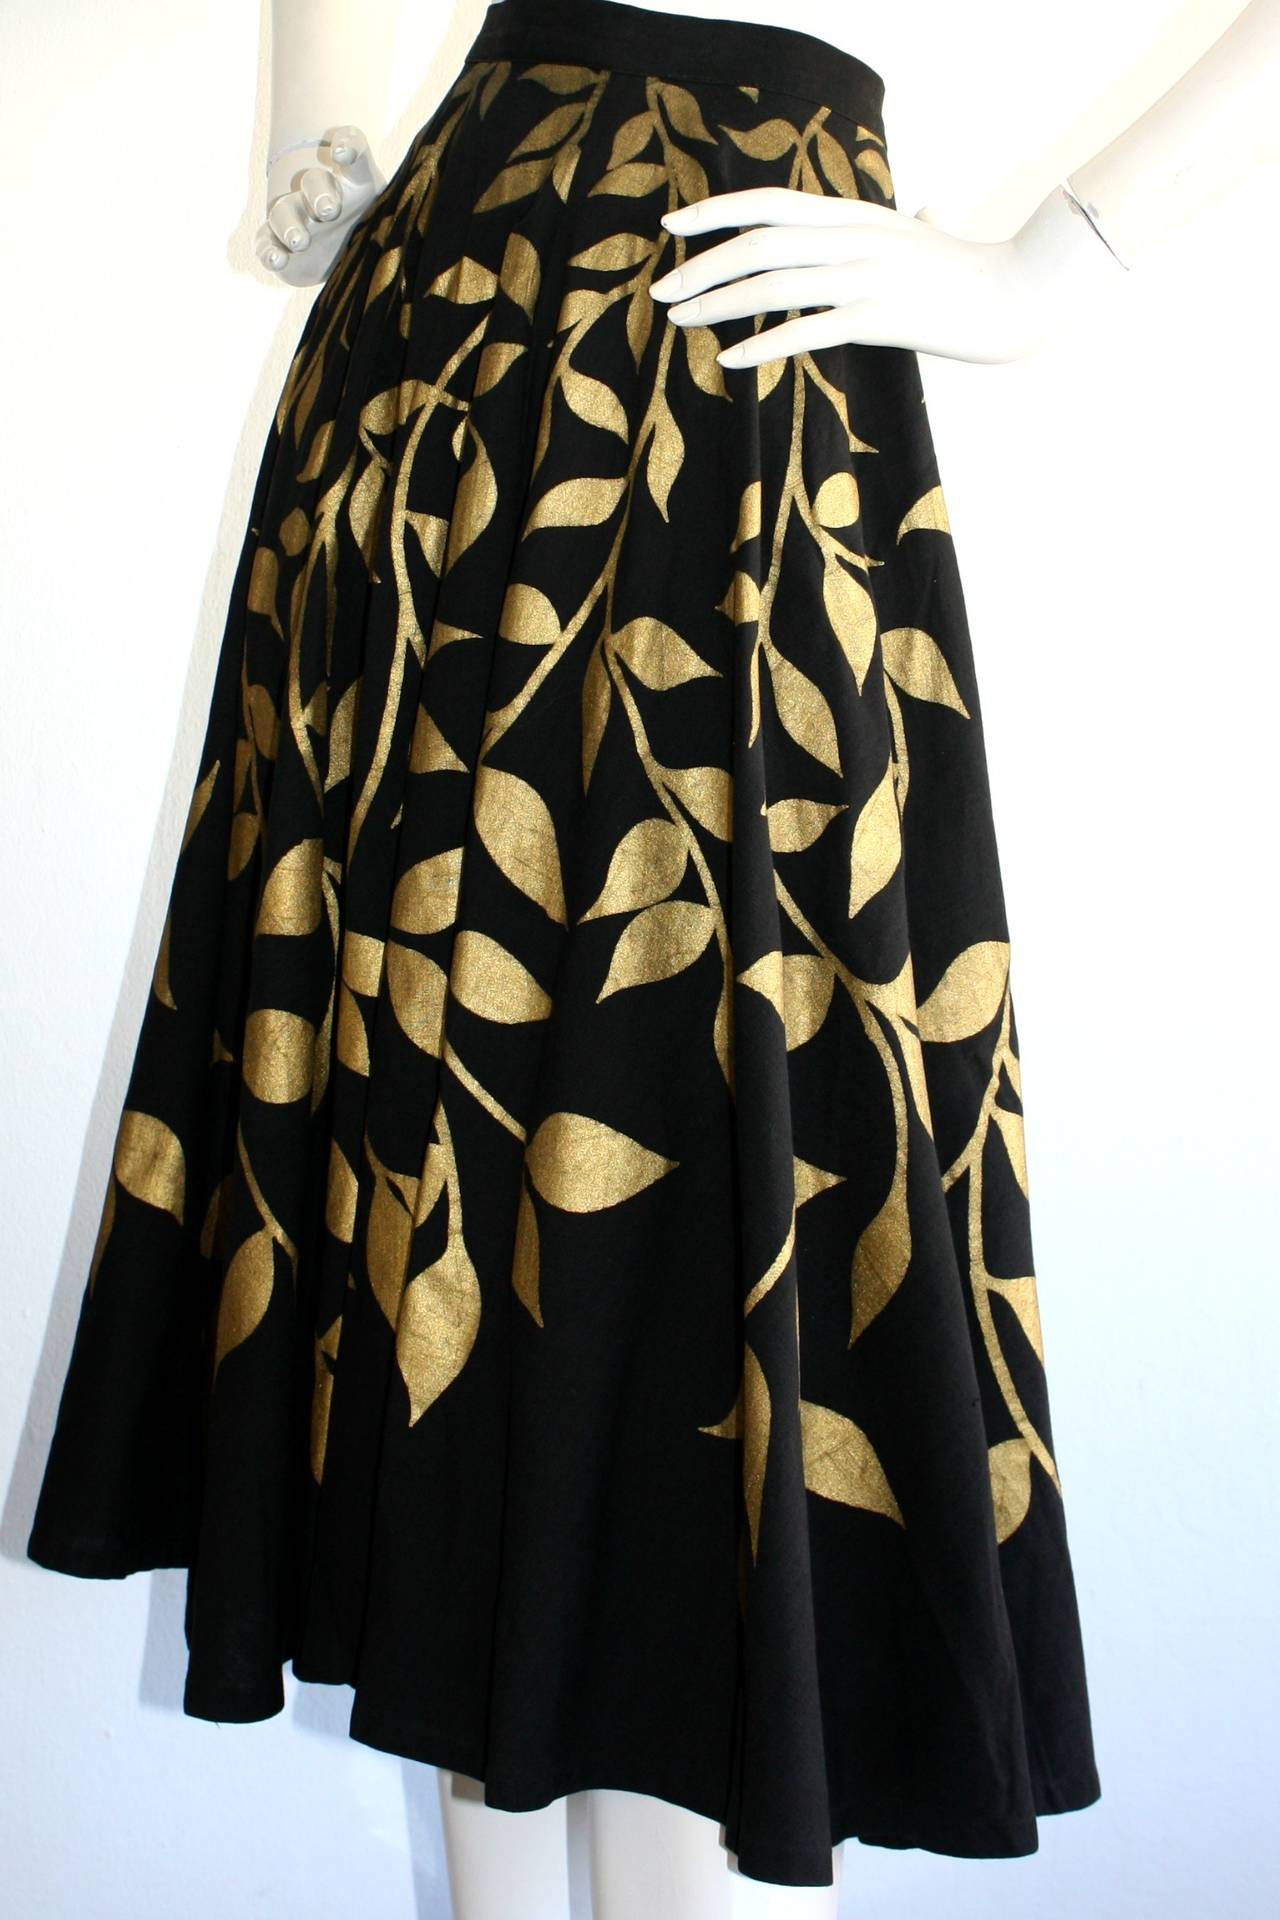 1950s Londy of Mexico Black & Gold Hand Painted Foliage Mexico Circle Skirt For Sale 2